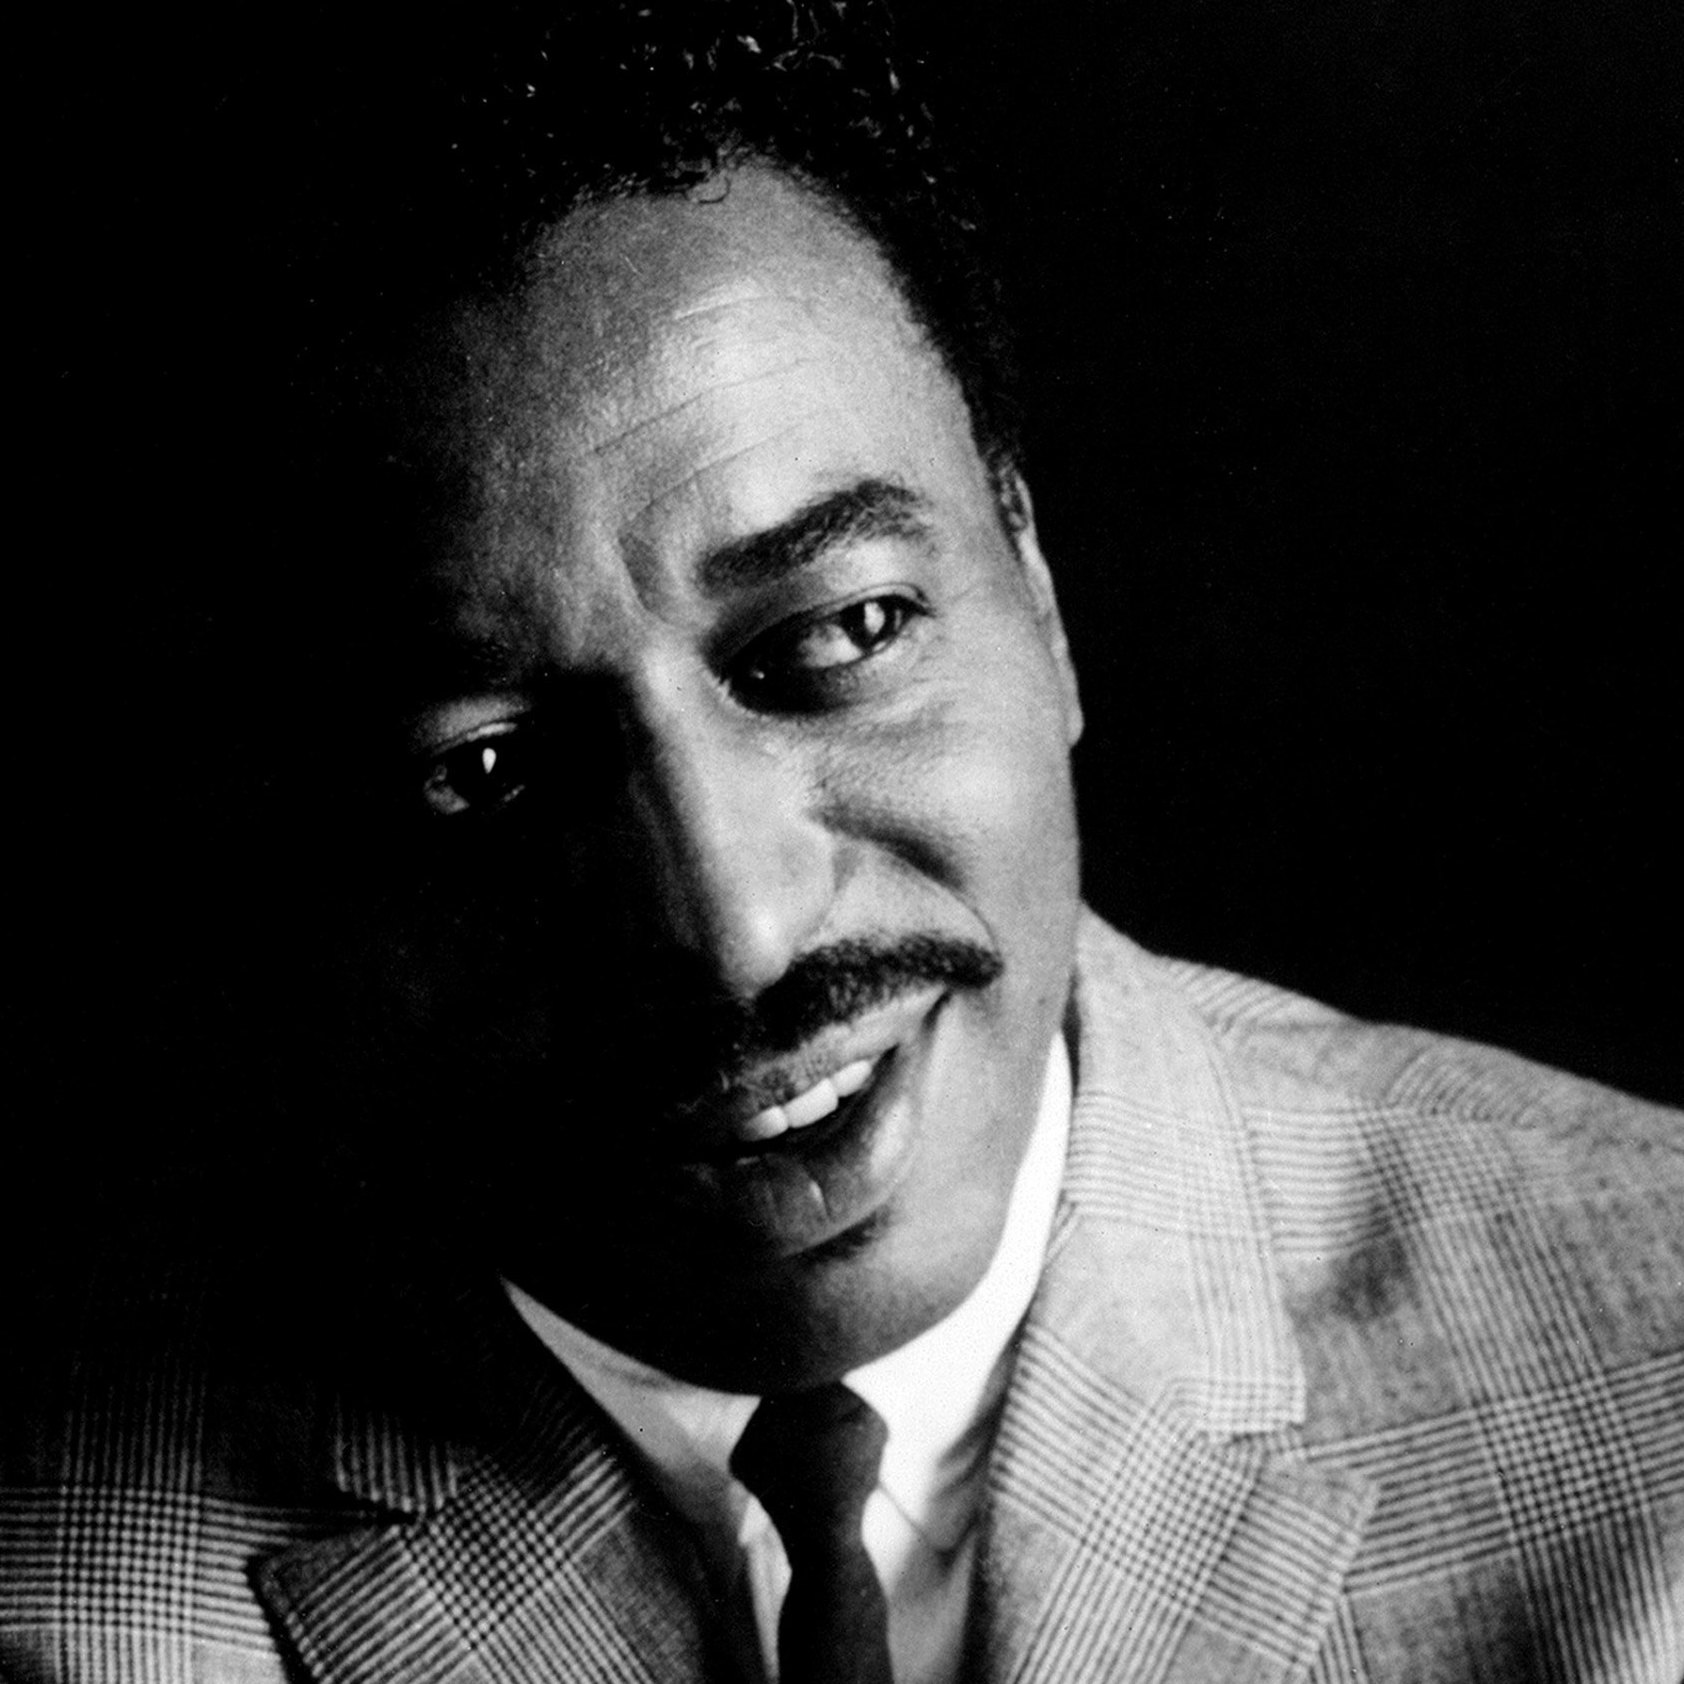 Chico Hamilton poses for a portrait c. 1958 in Los Angeles, Calif.